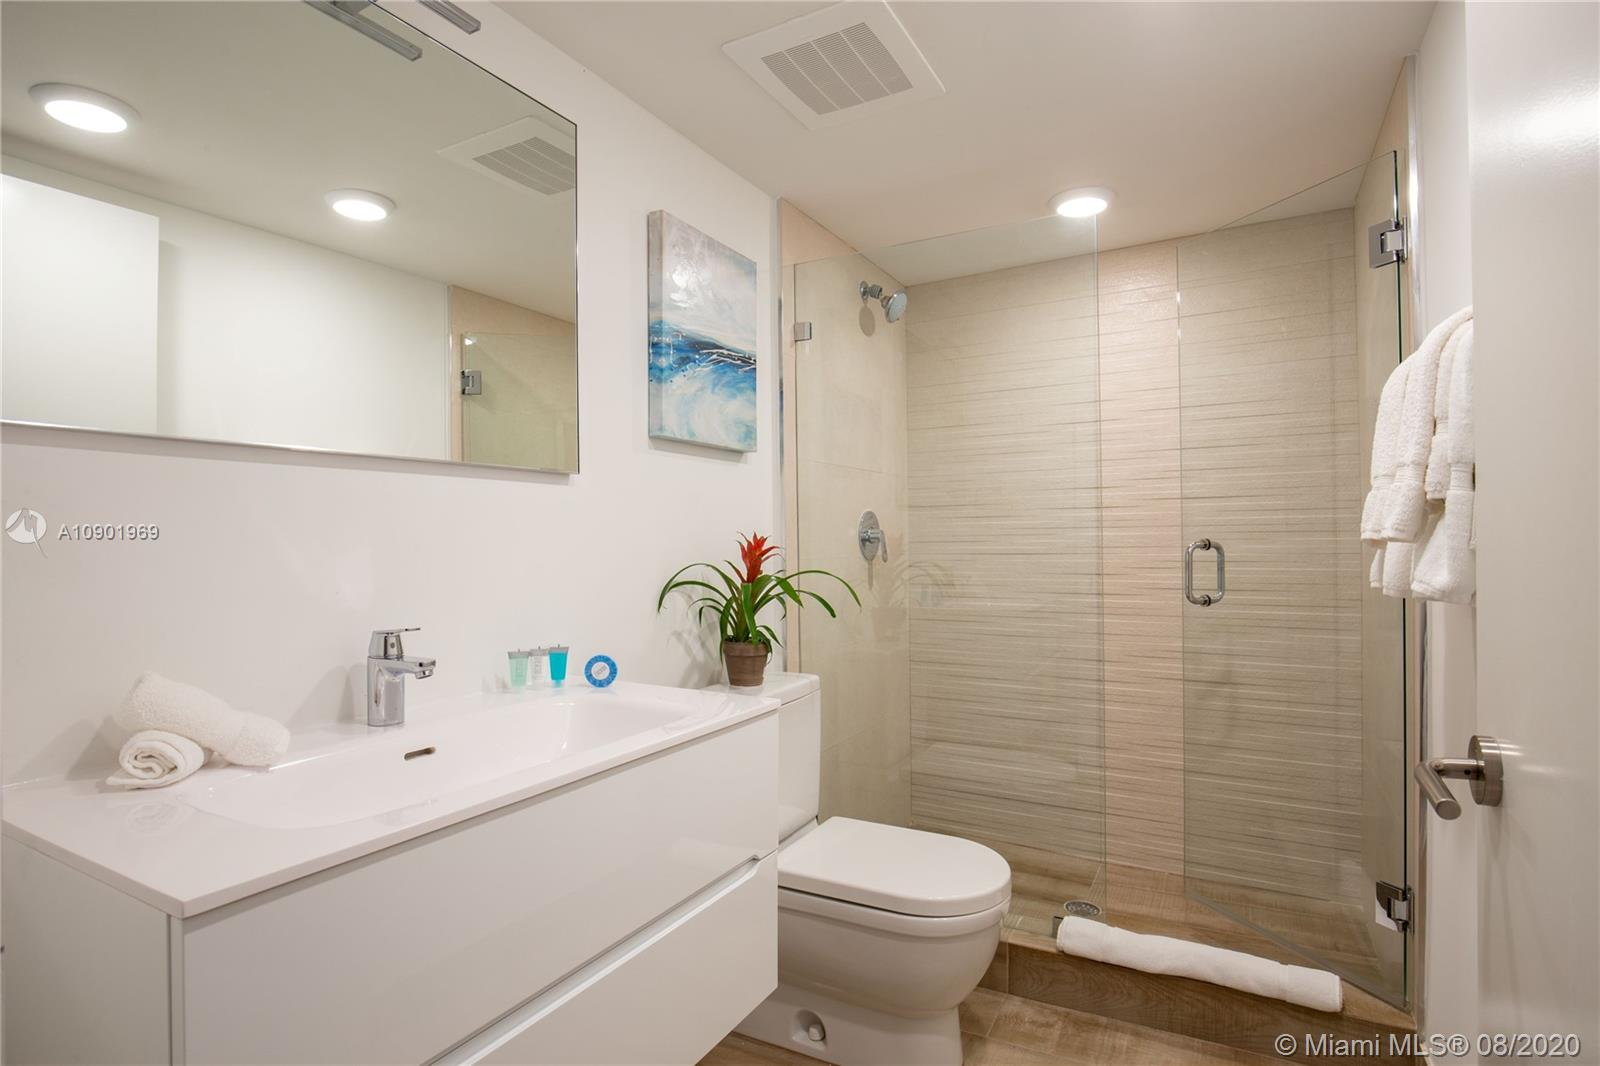 THIS IS A BOUTIQUE BUILDING LOCATED ON EAST BAY HARBOR DR, IN THE BEAUTIFUL BAY HARBOR ISLANDS.  THIS AMAZING 1 BEDROOM UNIT WITH LARGE PRIVATE BALCONY,  CONTEMPORARY LIGHTING, QUARTZ COUNTER TOPS, SUBZERO REFRIGERATOR, SLEEK ITALIAN CABINETRY AND PREMIUM BOSCH WASHER, DRYERS. THE IVORY IS A 40 UNIT BOUTIQUE BUILDING WITH ROOFTOP POOL. WILL MAKE YOU FEEL AS IF YOU WERE ON VACATION IN YOUR OWN HOME. GREAT OPPORTUNITY.